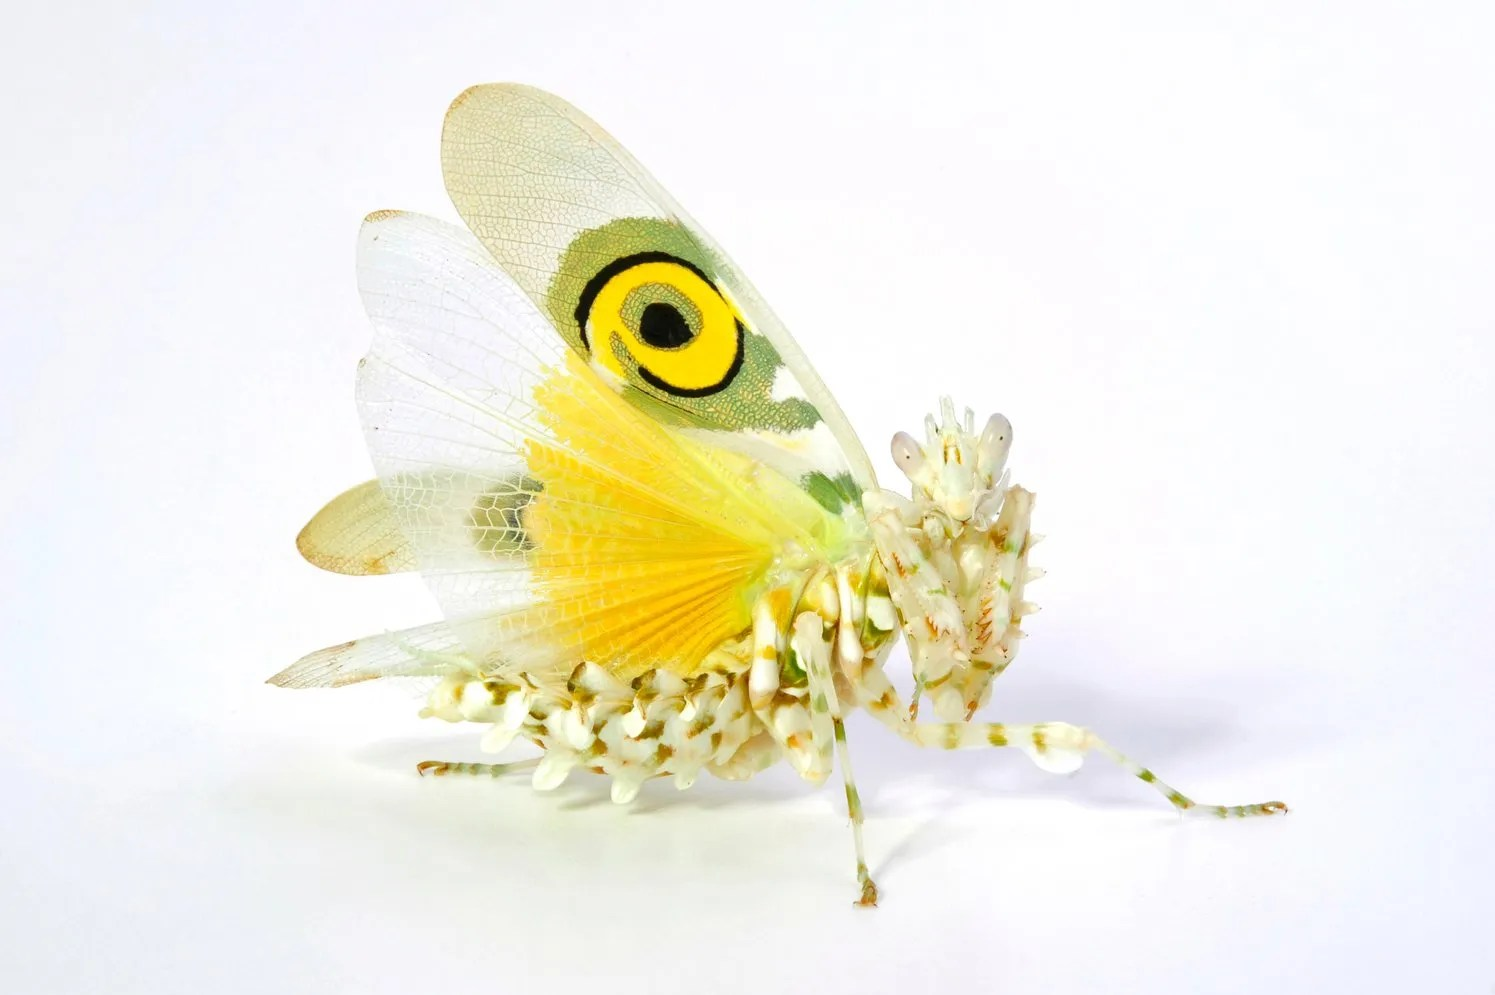 Spiny flower mantis (Pseudocreobotra wahlbergii) in a threat display